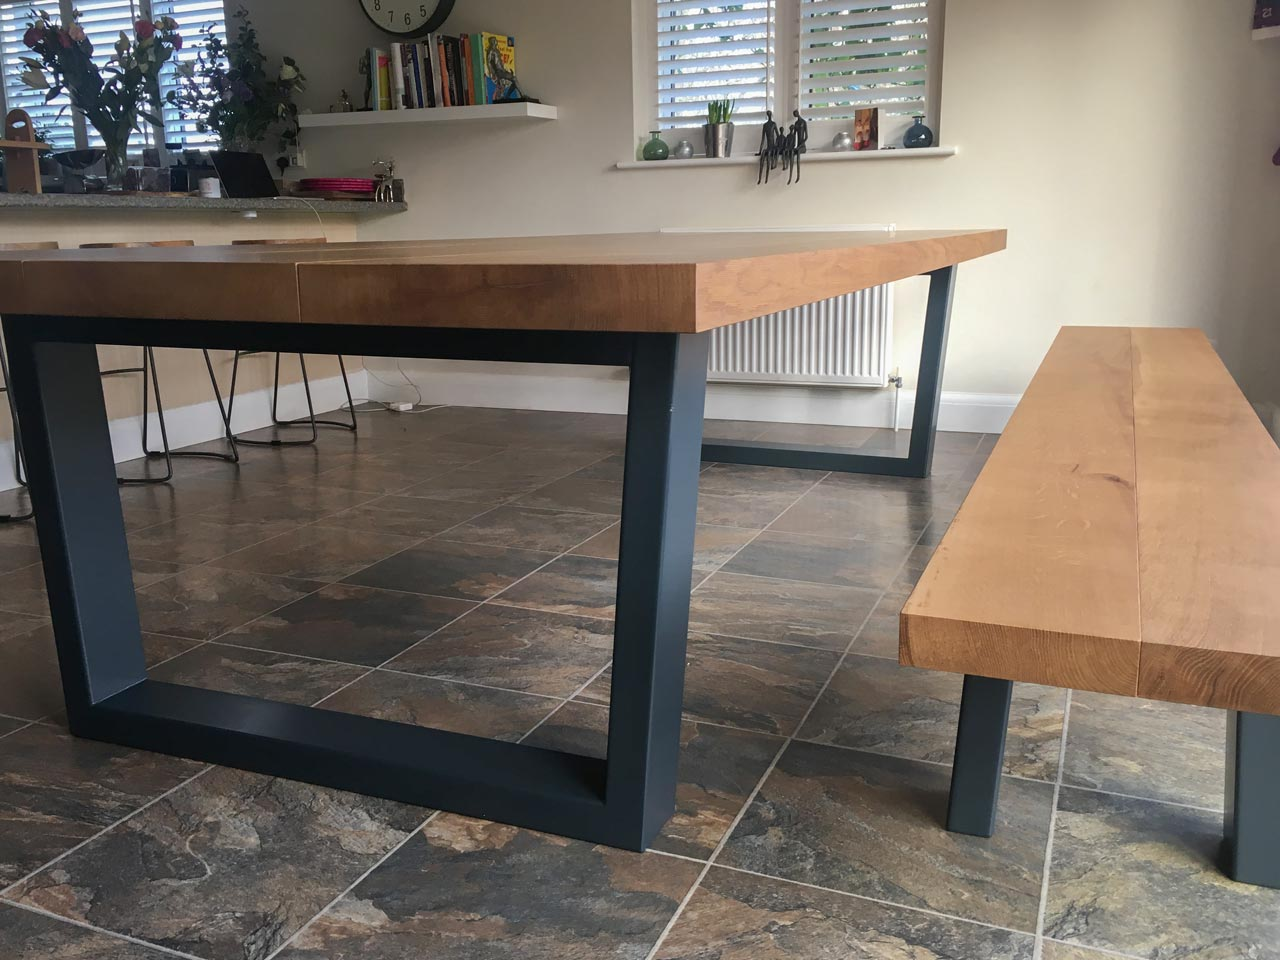 abacus-tables-project-722-pic-1